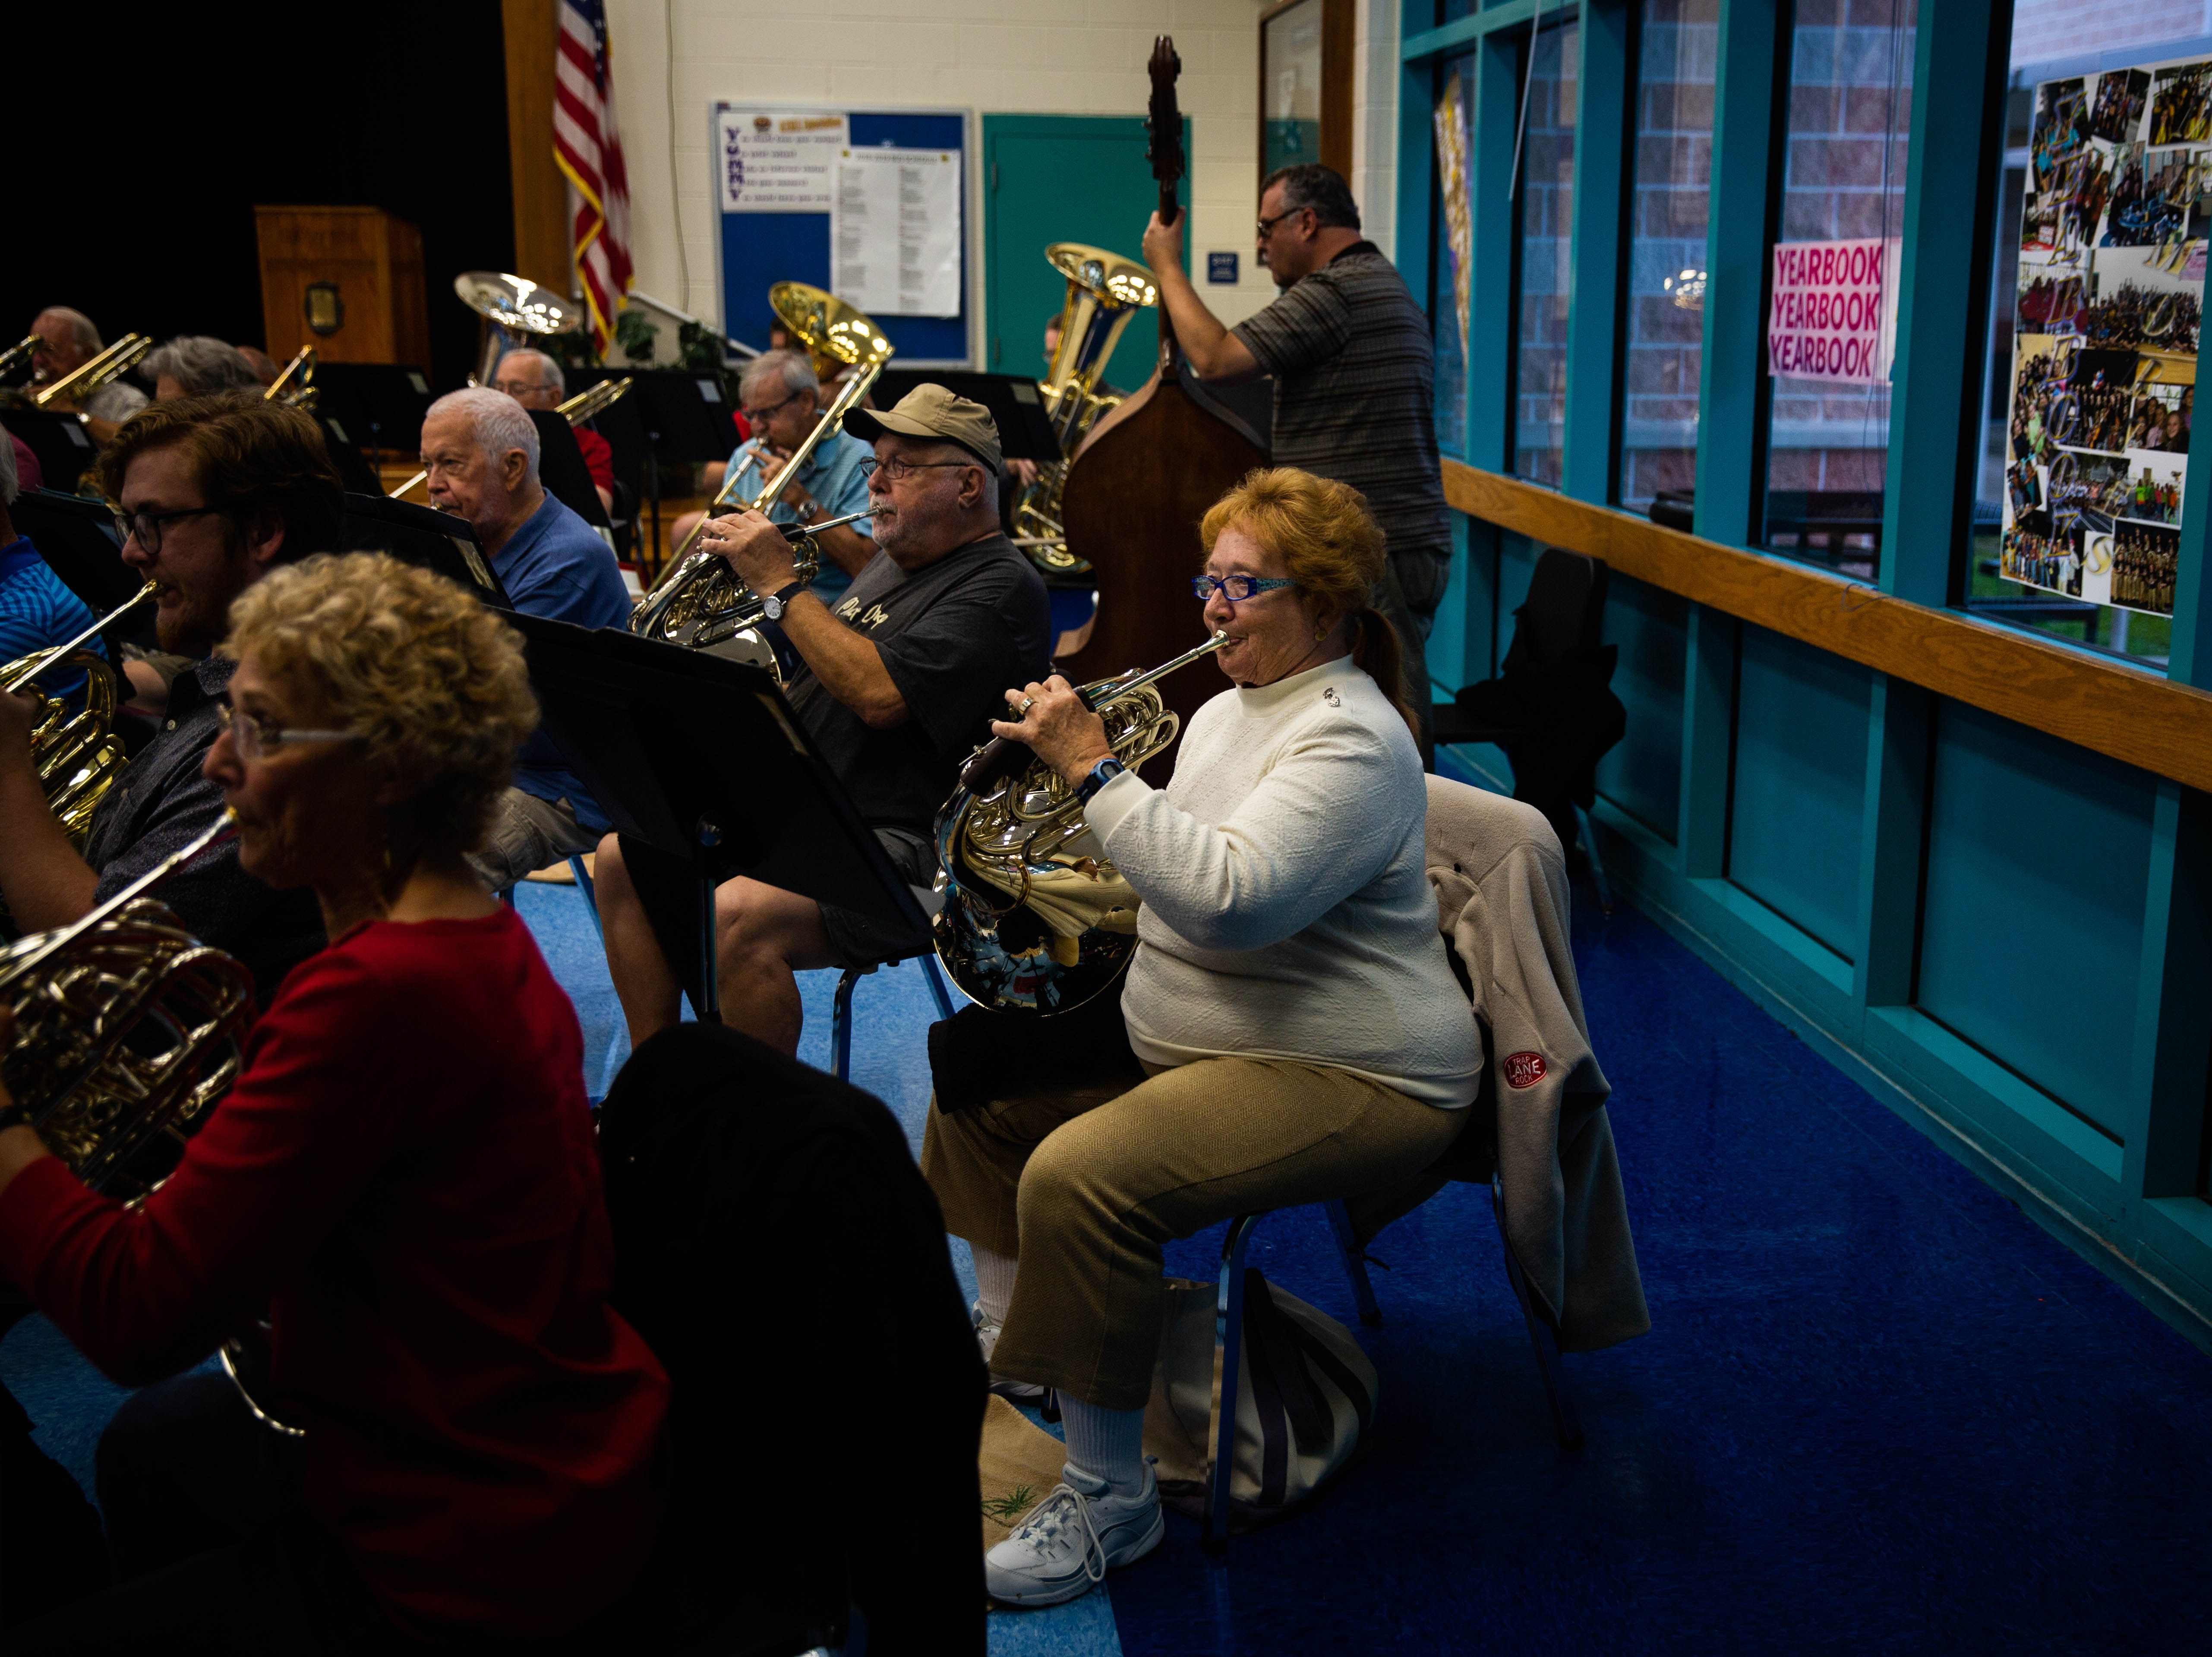 The Naples Concert Band practices at Gulfview Middle School on April 9, 2019. This was the last practice they will have at the school, where they have been practicing for 40 years.